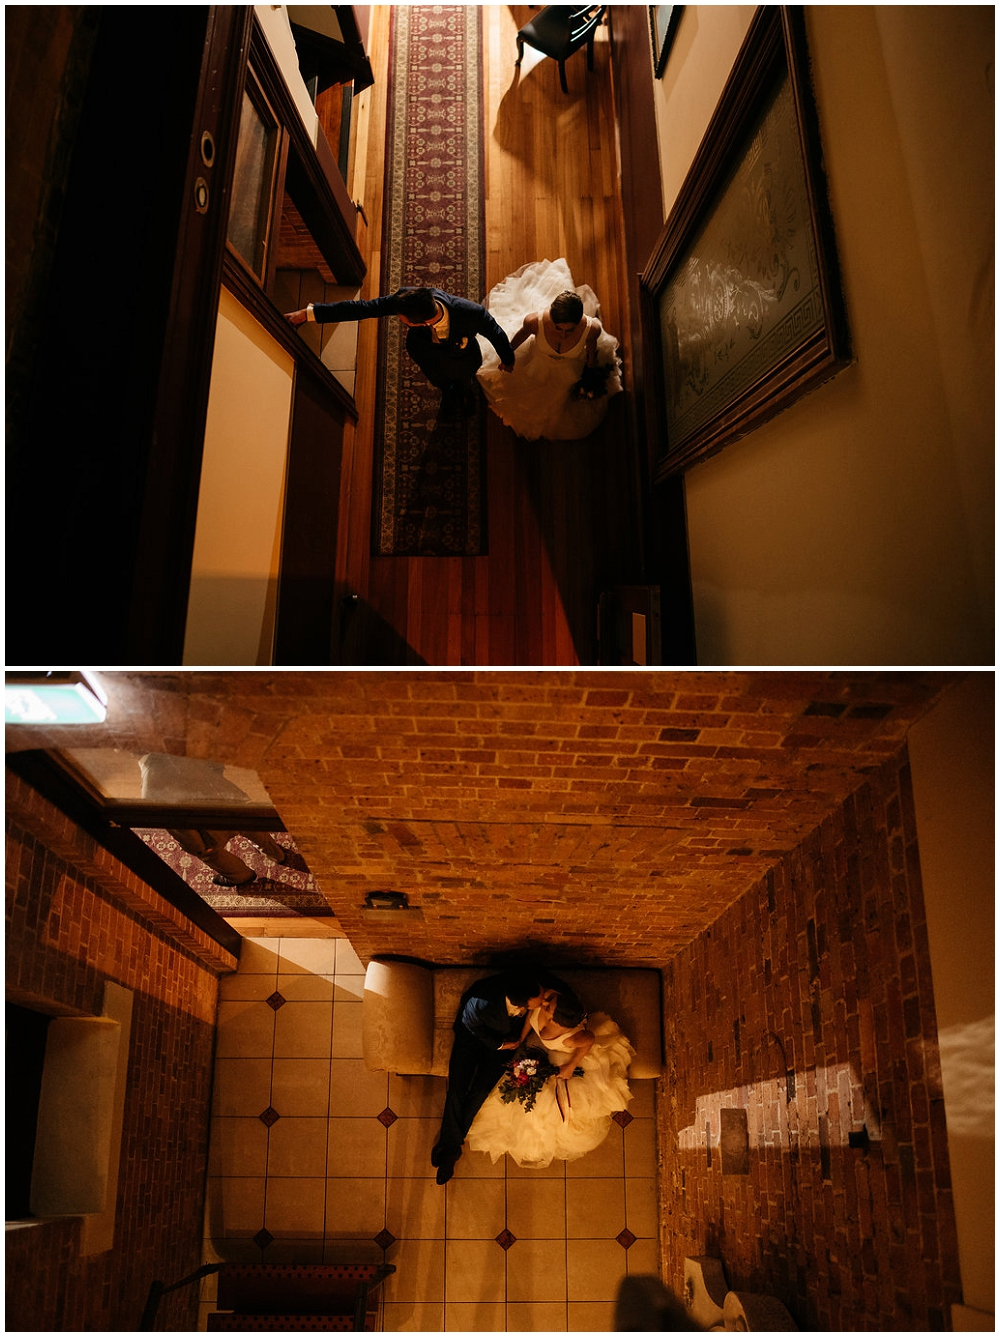 Bride and Groom's Creative Shots